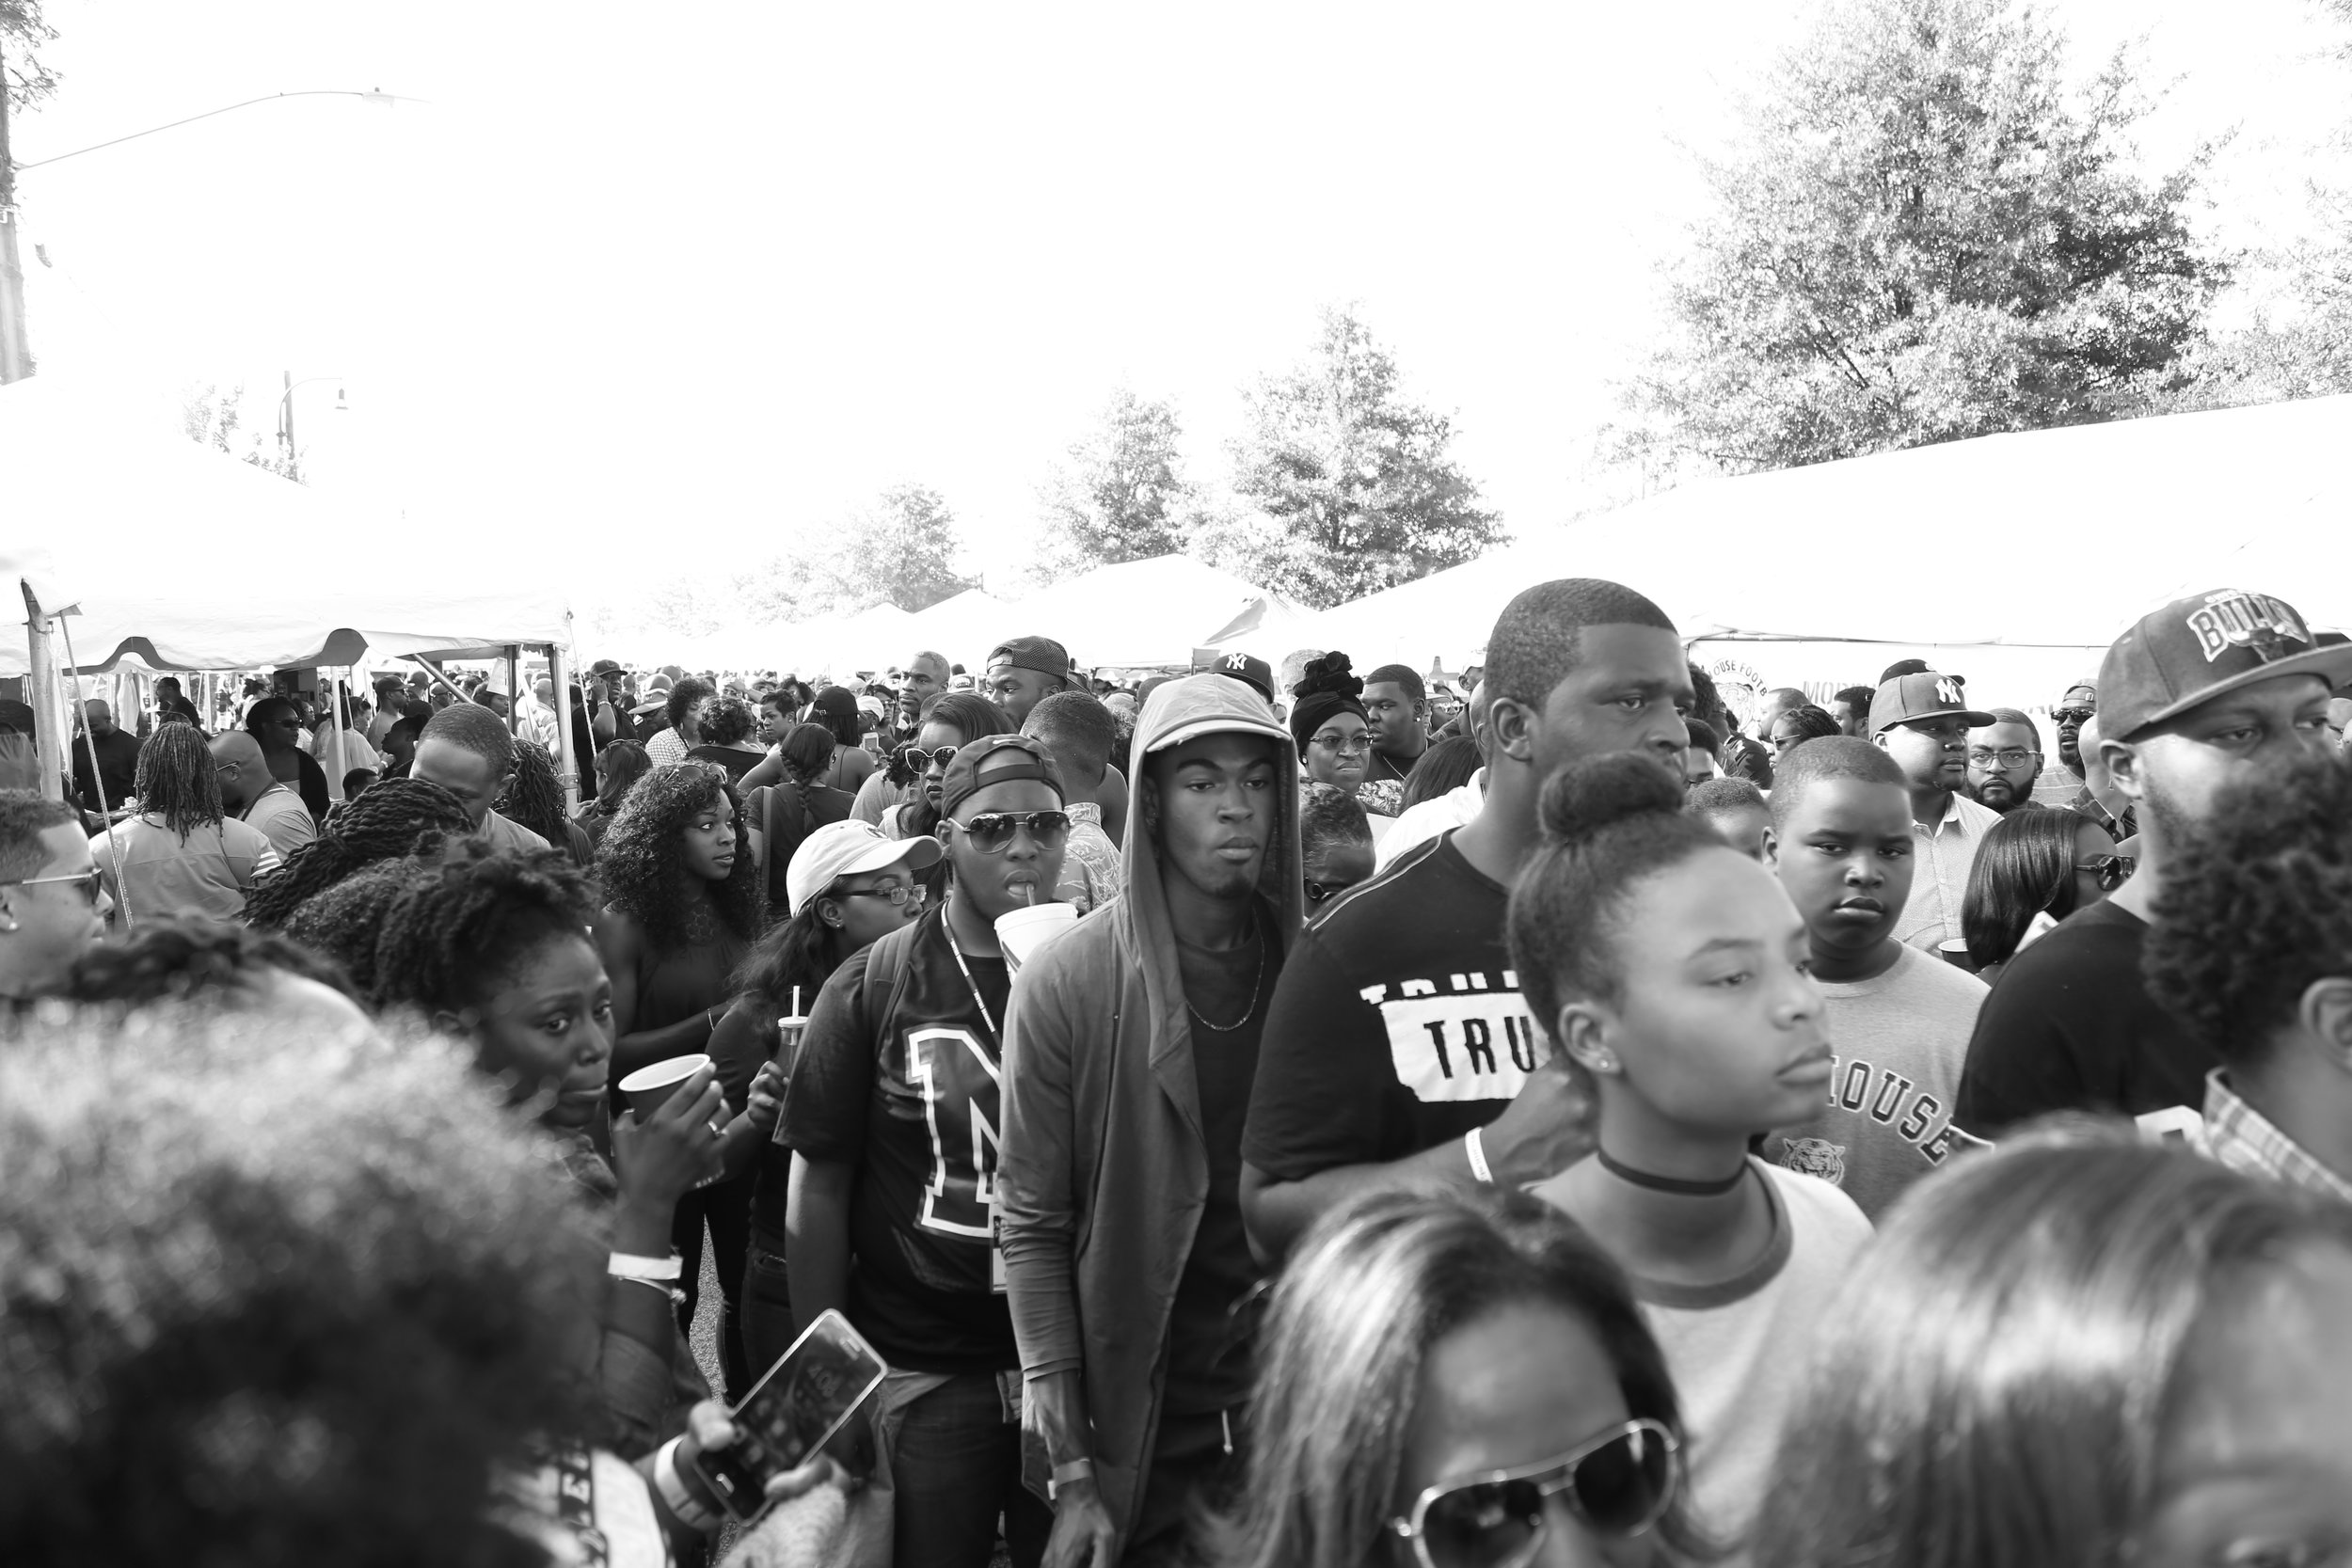 The crowd was thick as half the city came out to celebrate the SpelHouse Homecoming.